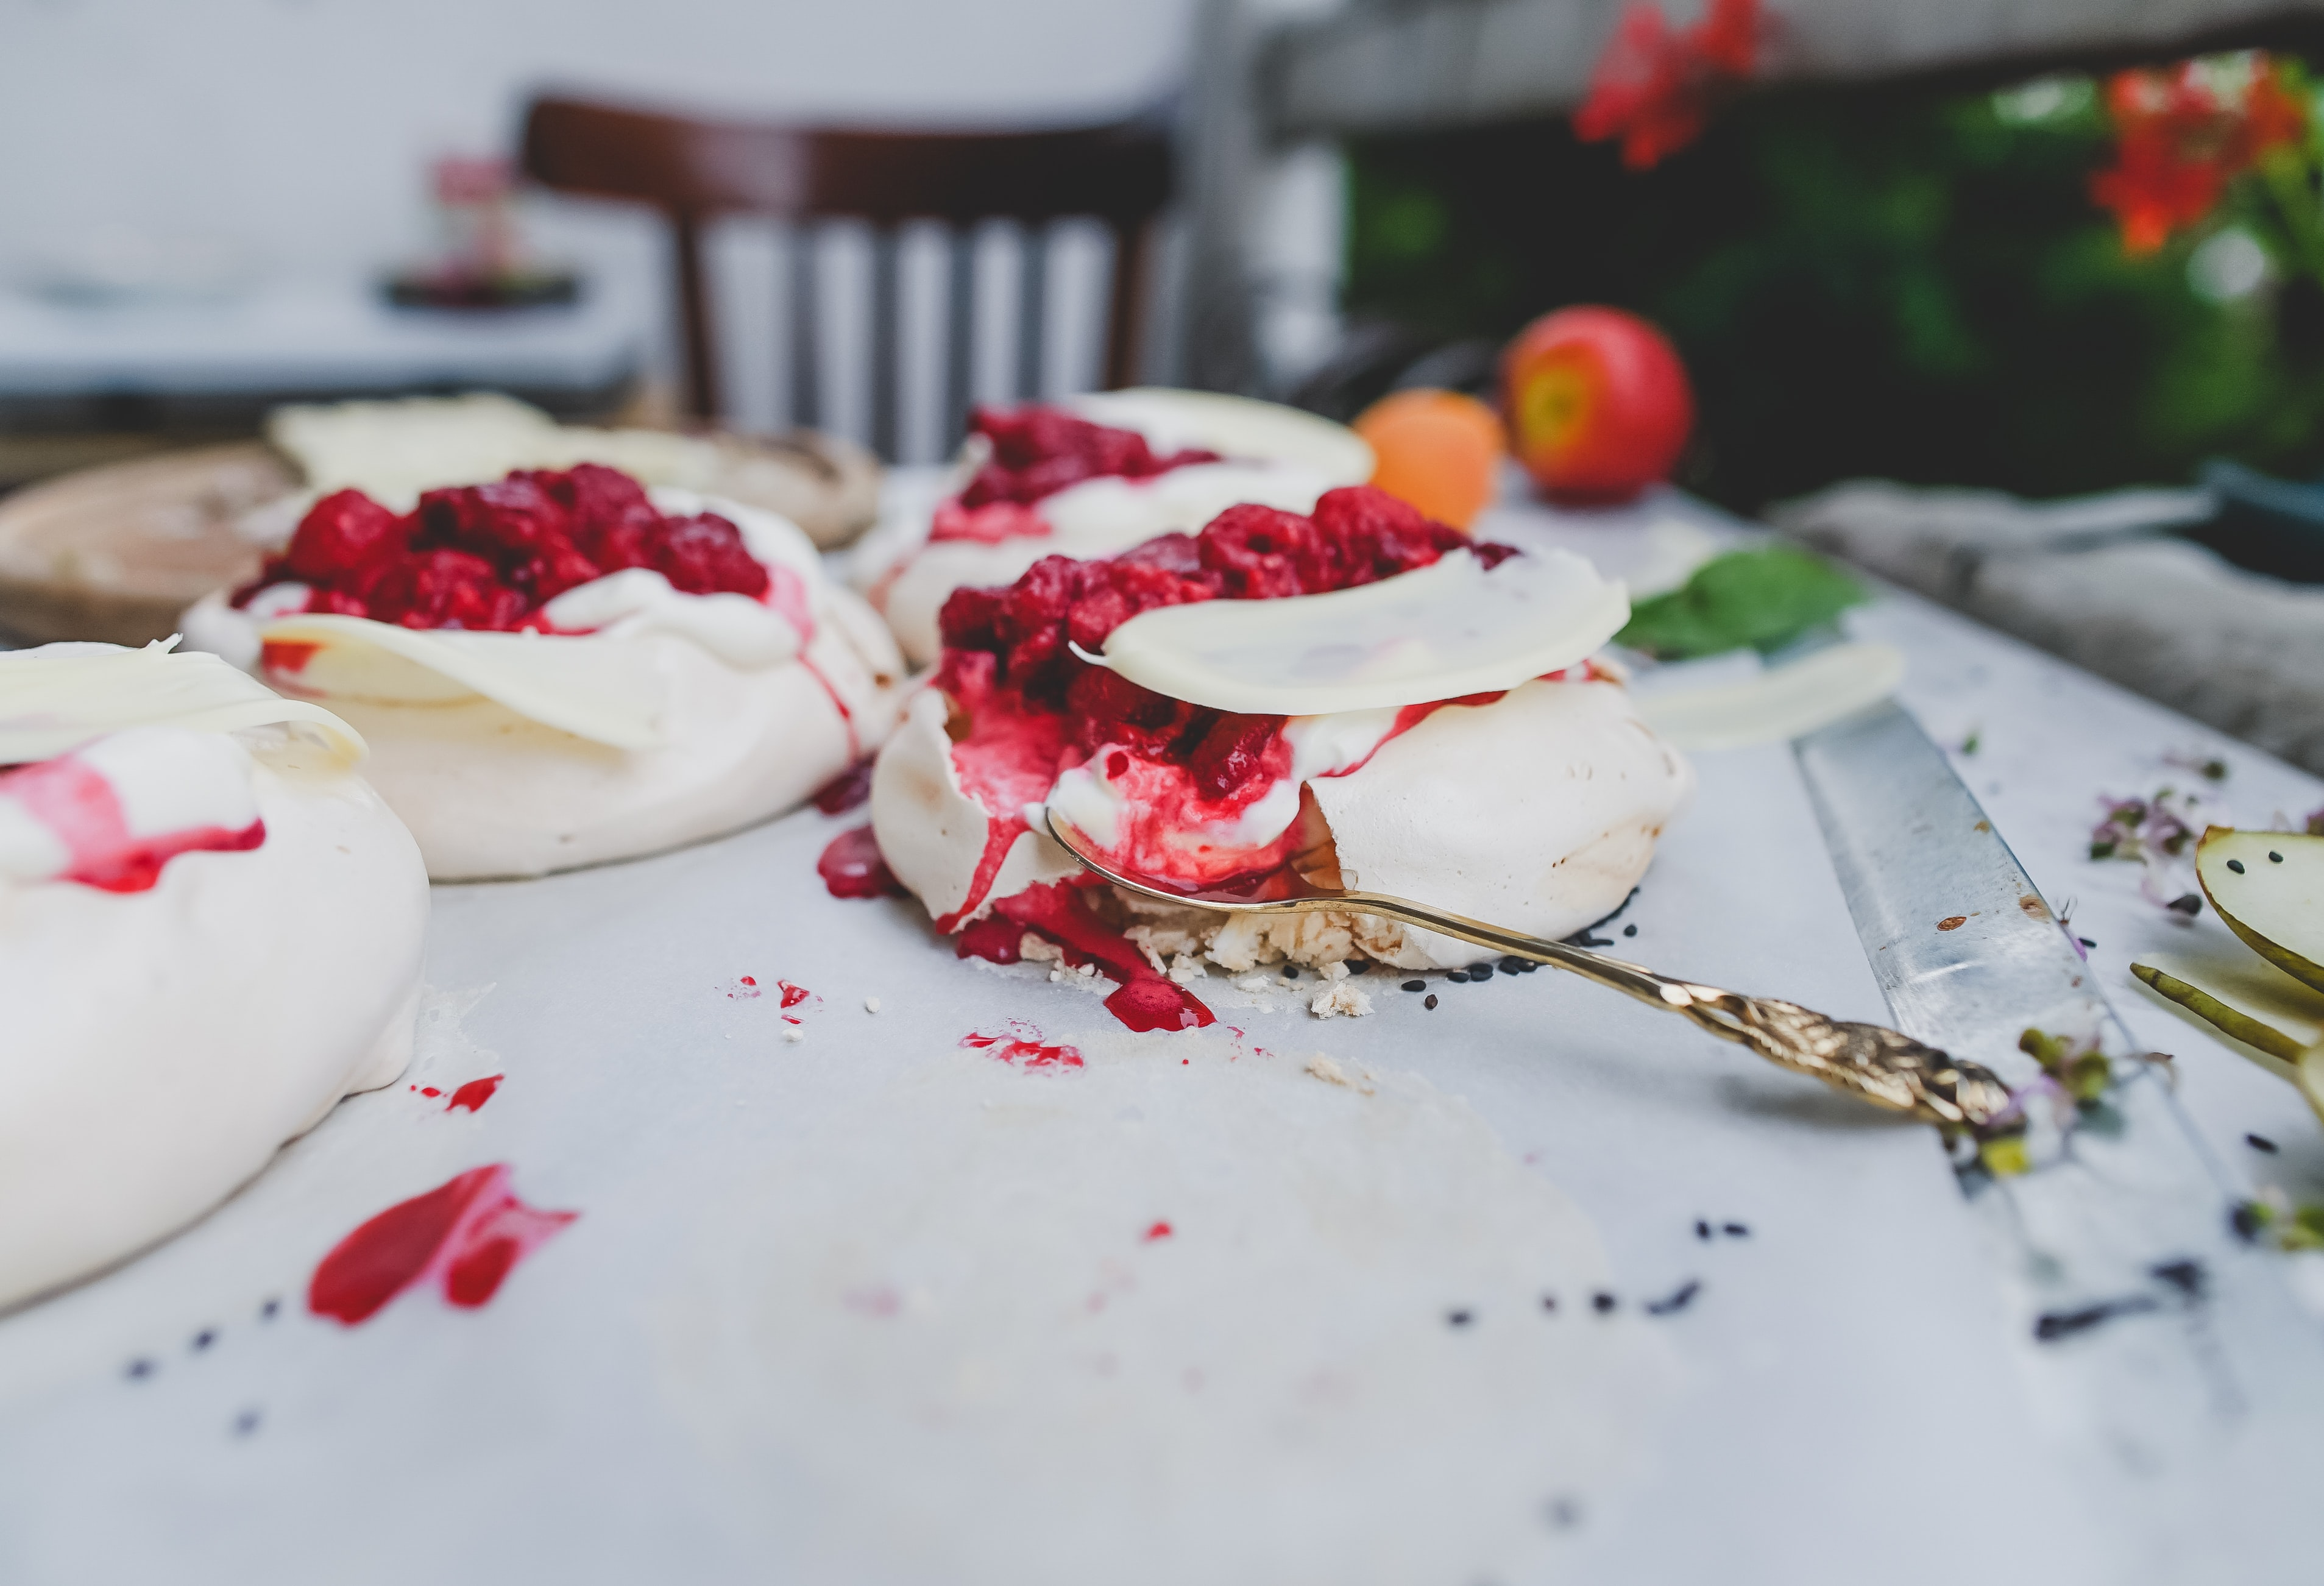 Rustic tablescape with french meringue cakes with raspberry sauce for dessert